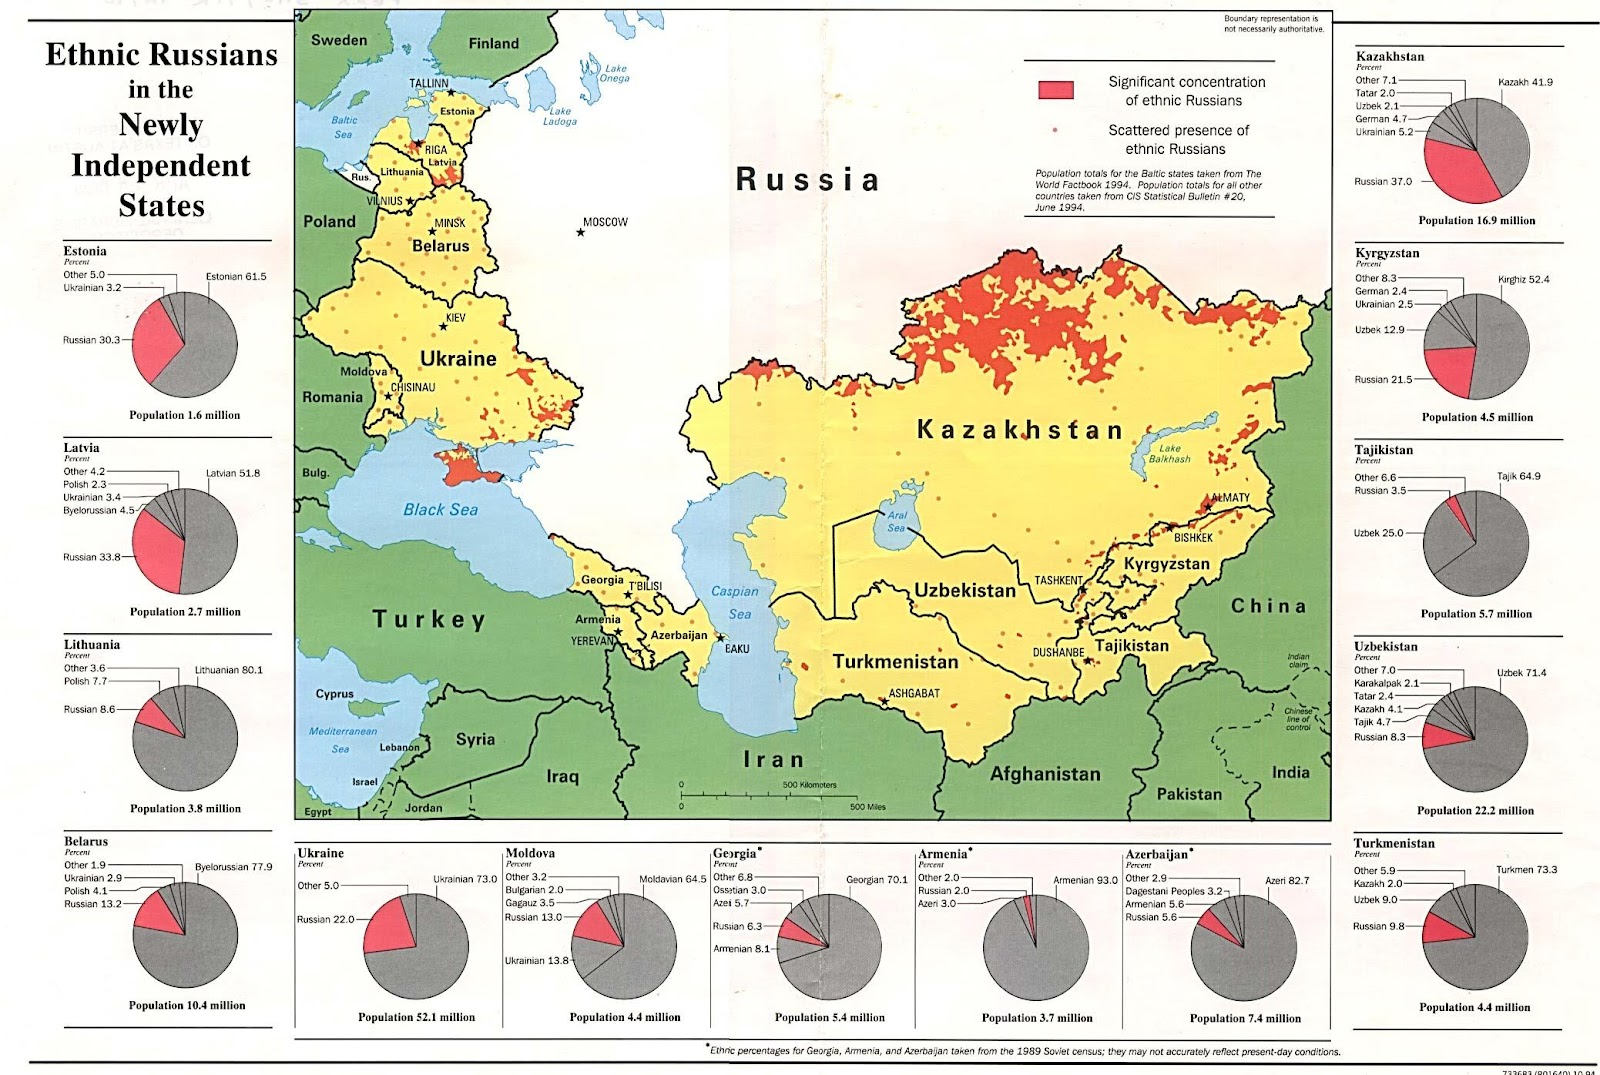 https://legacy.lib.utexas.edu/maps/commonwealth/russians_ethnic_94.jpg